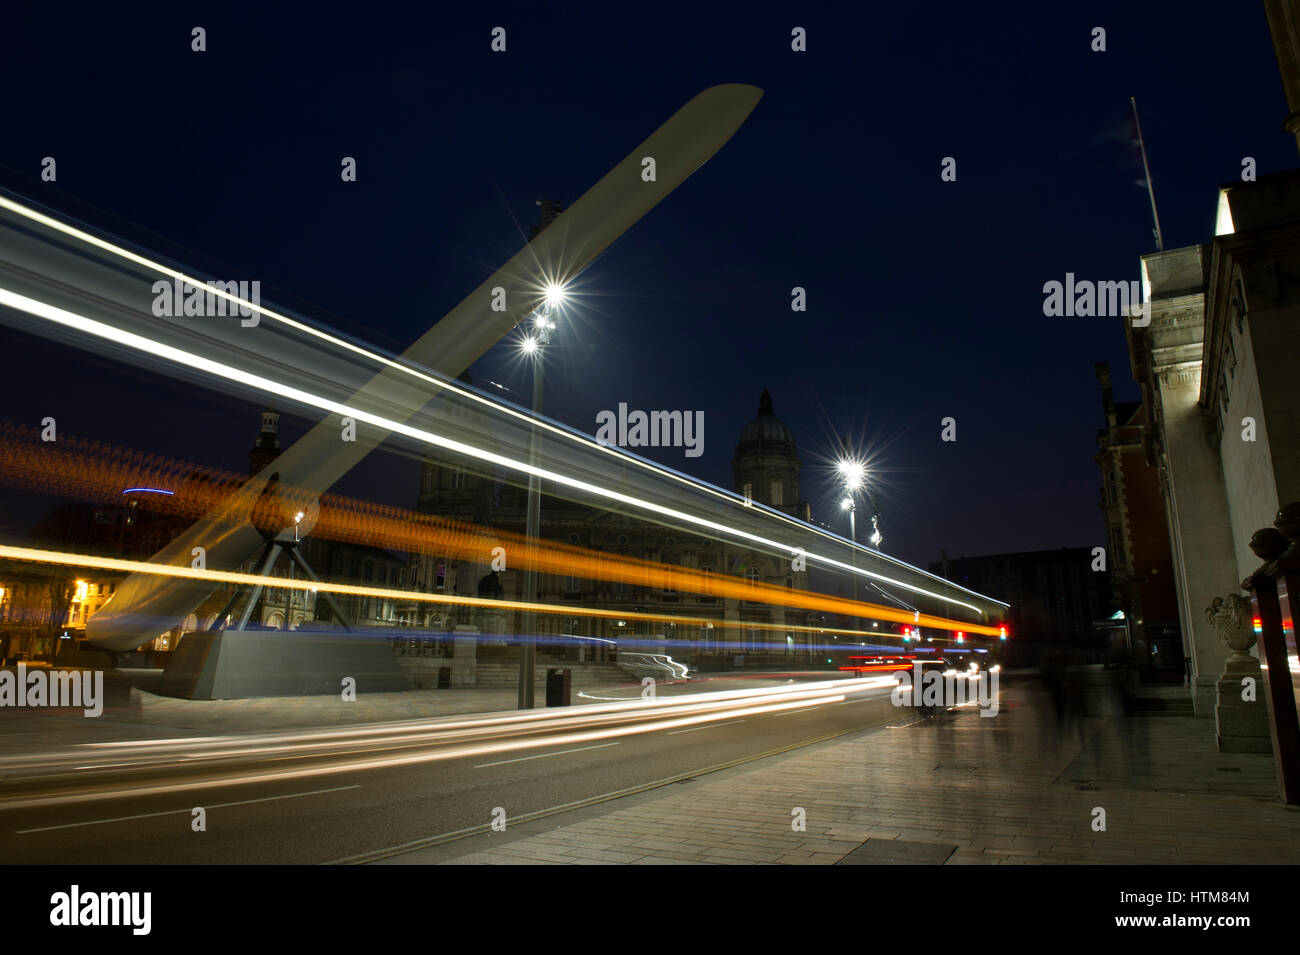 Light trails from buses passing under the Wind Turbine Blade on display as part of the UK City of Culture 2017 in - Stock Image